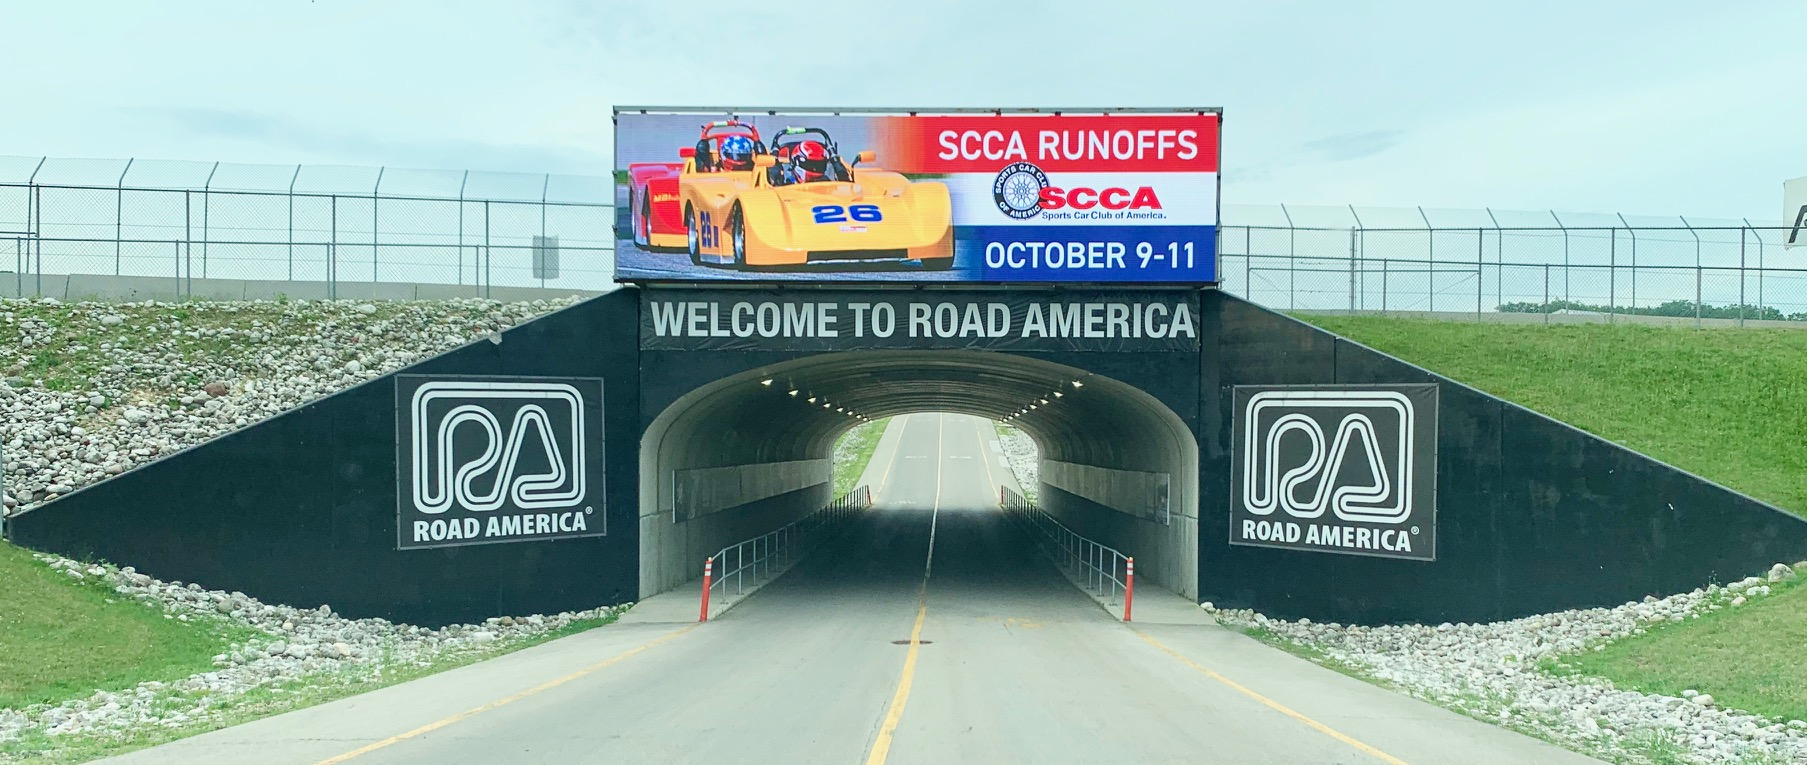 Always an exciting feeling to travel into the main entrance tunnel to Road America!